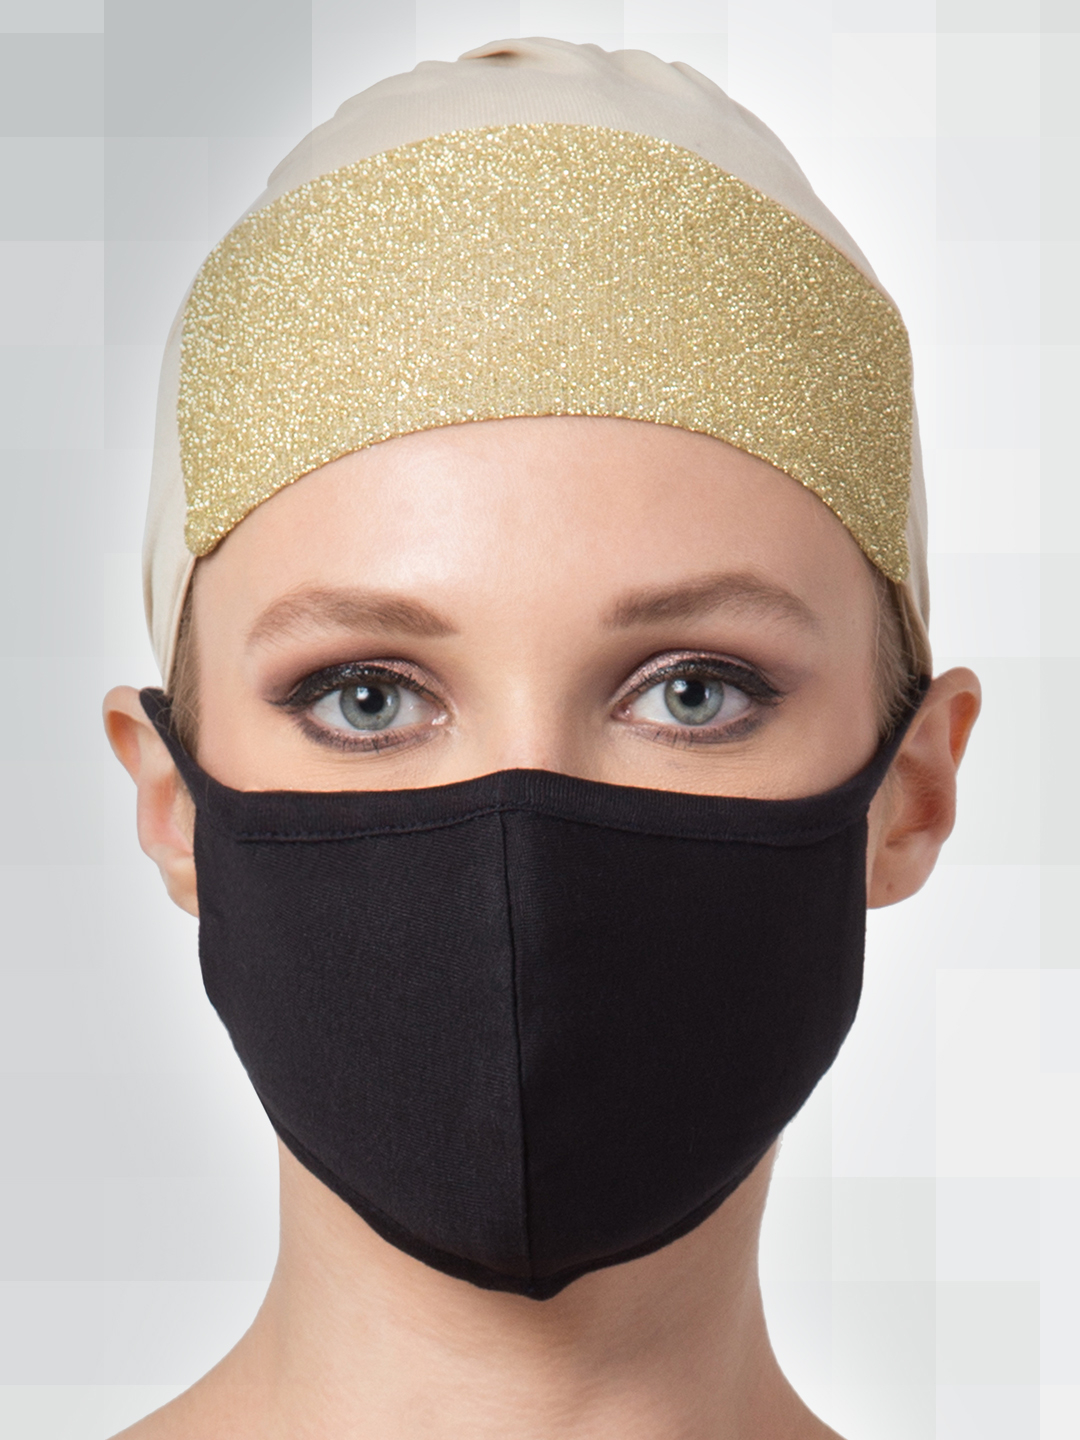 Jersey Viscose Under Hijab Shimmer Cap and Mask Combo In Beige And Black